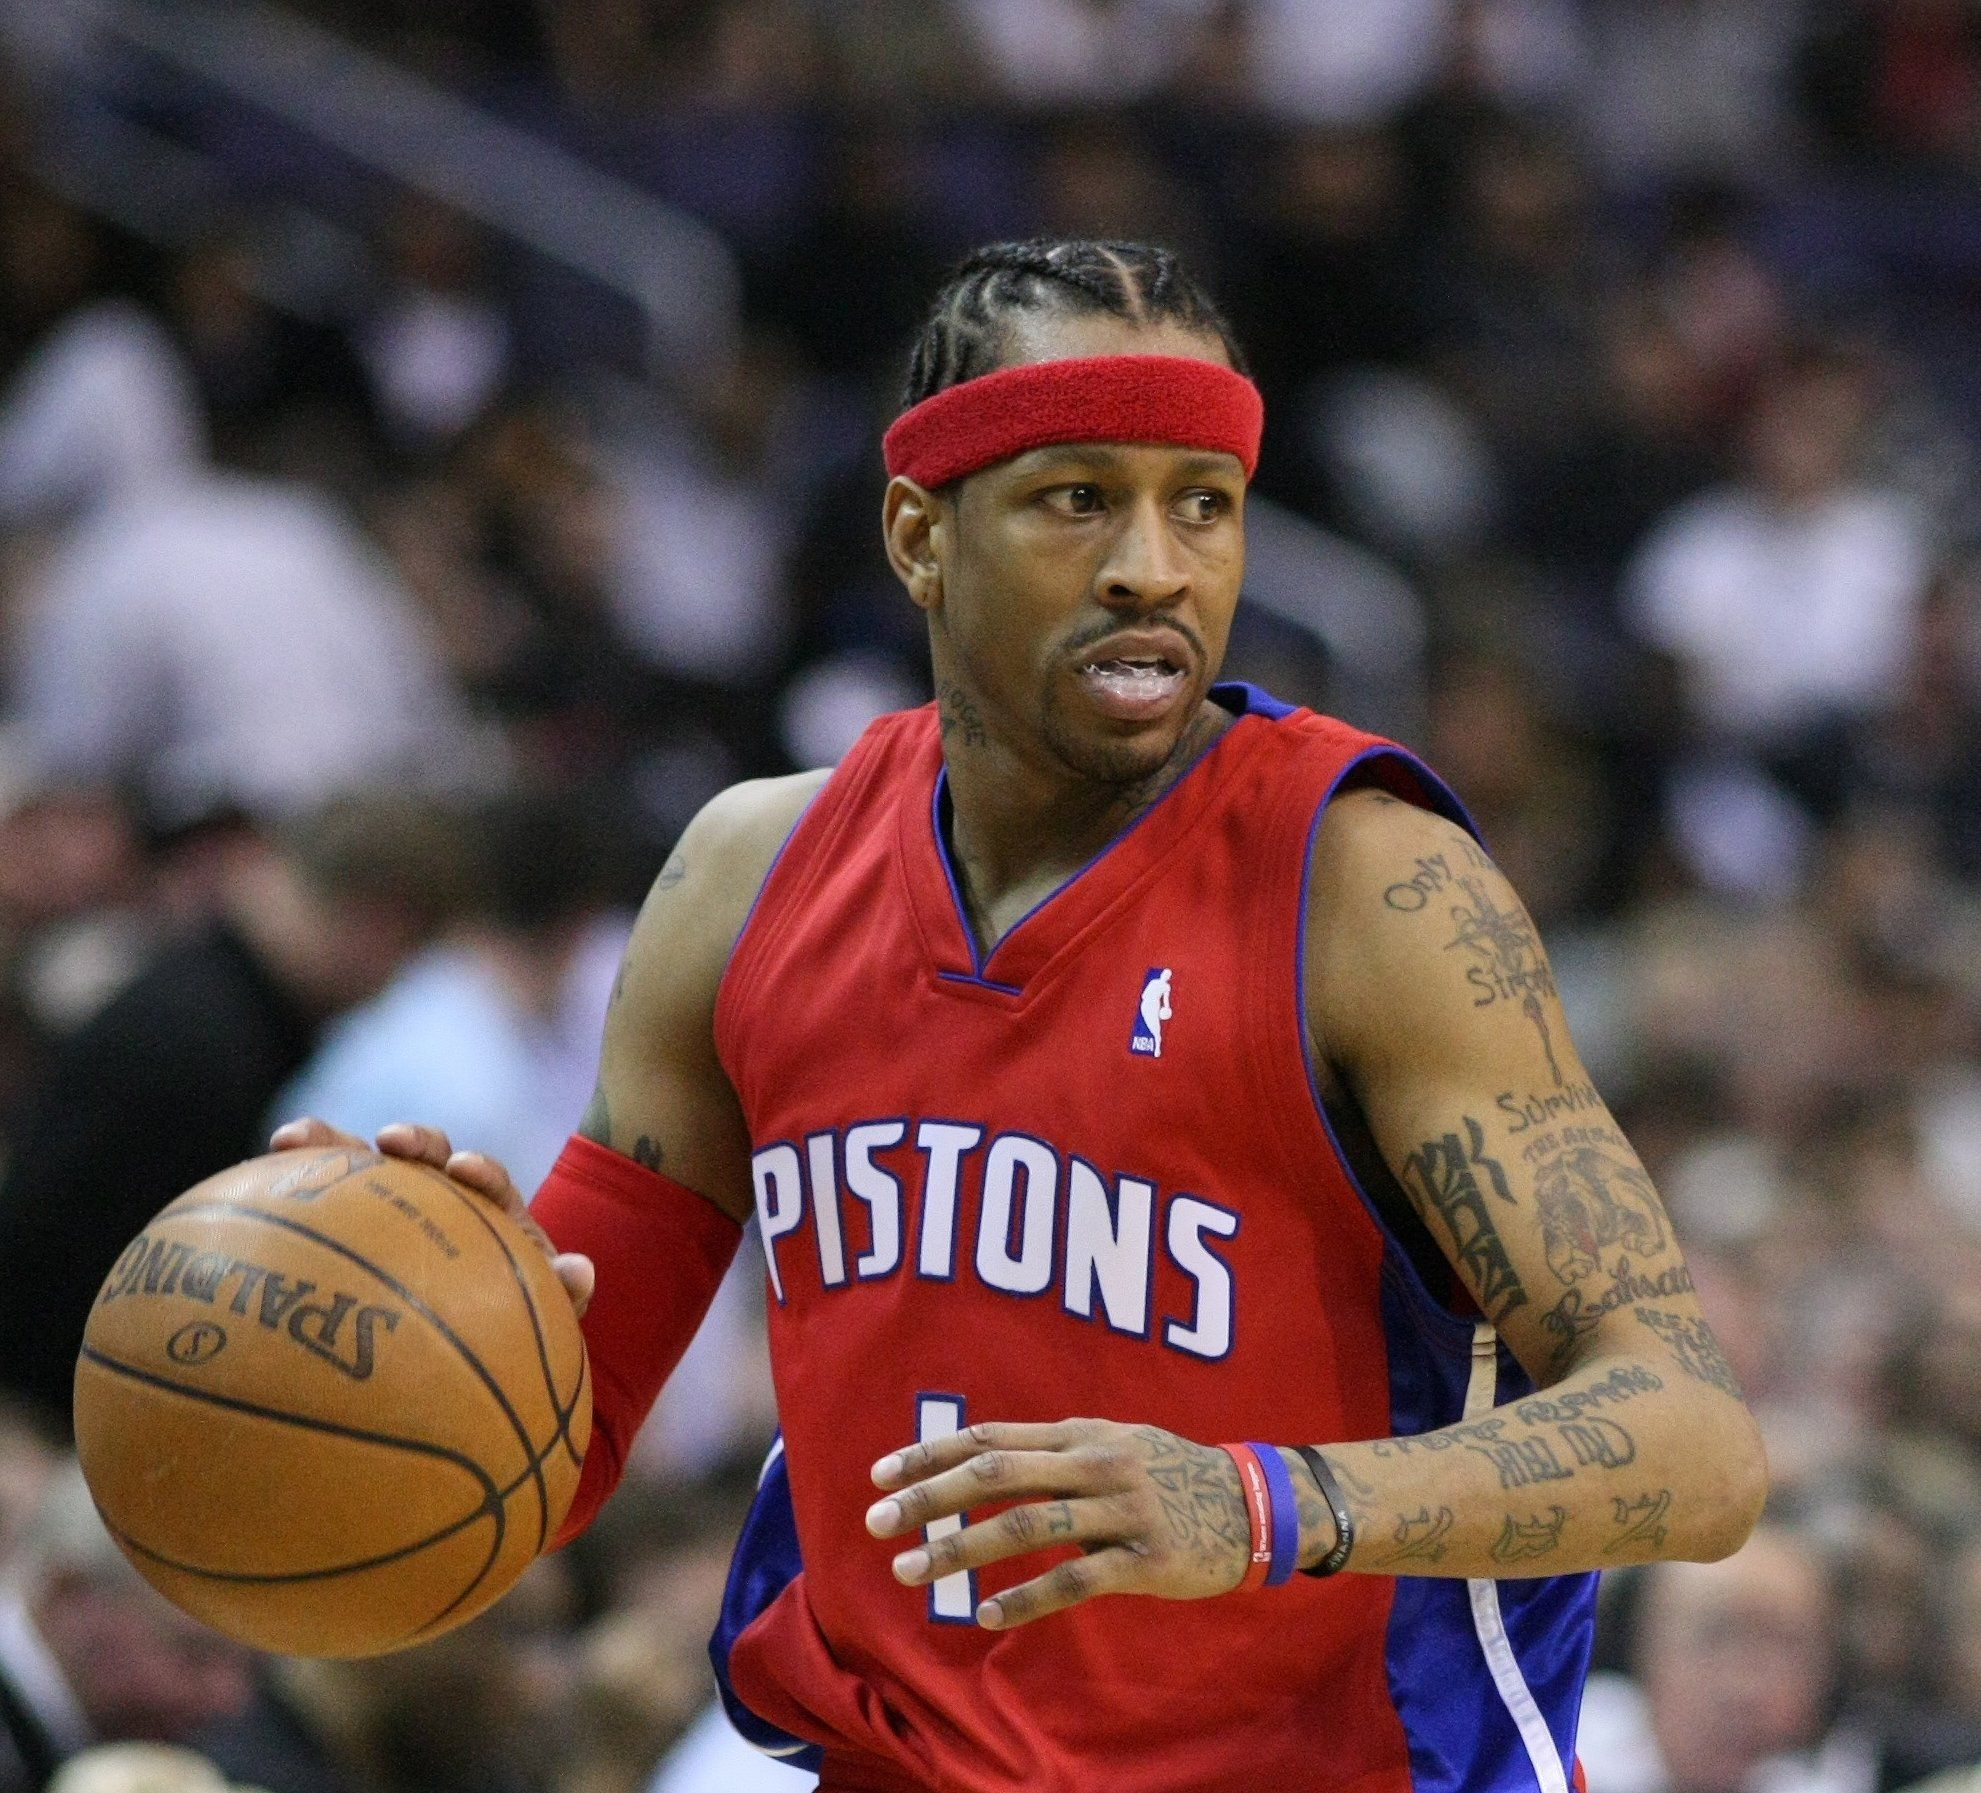 Nba allen iverson s atlanta mansion foreclosed celebrity foreclosures celebrity homes rich and famous homes celebrity bankruptcies and more bad real